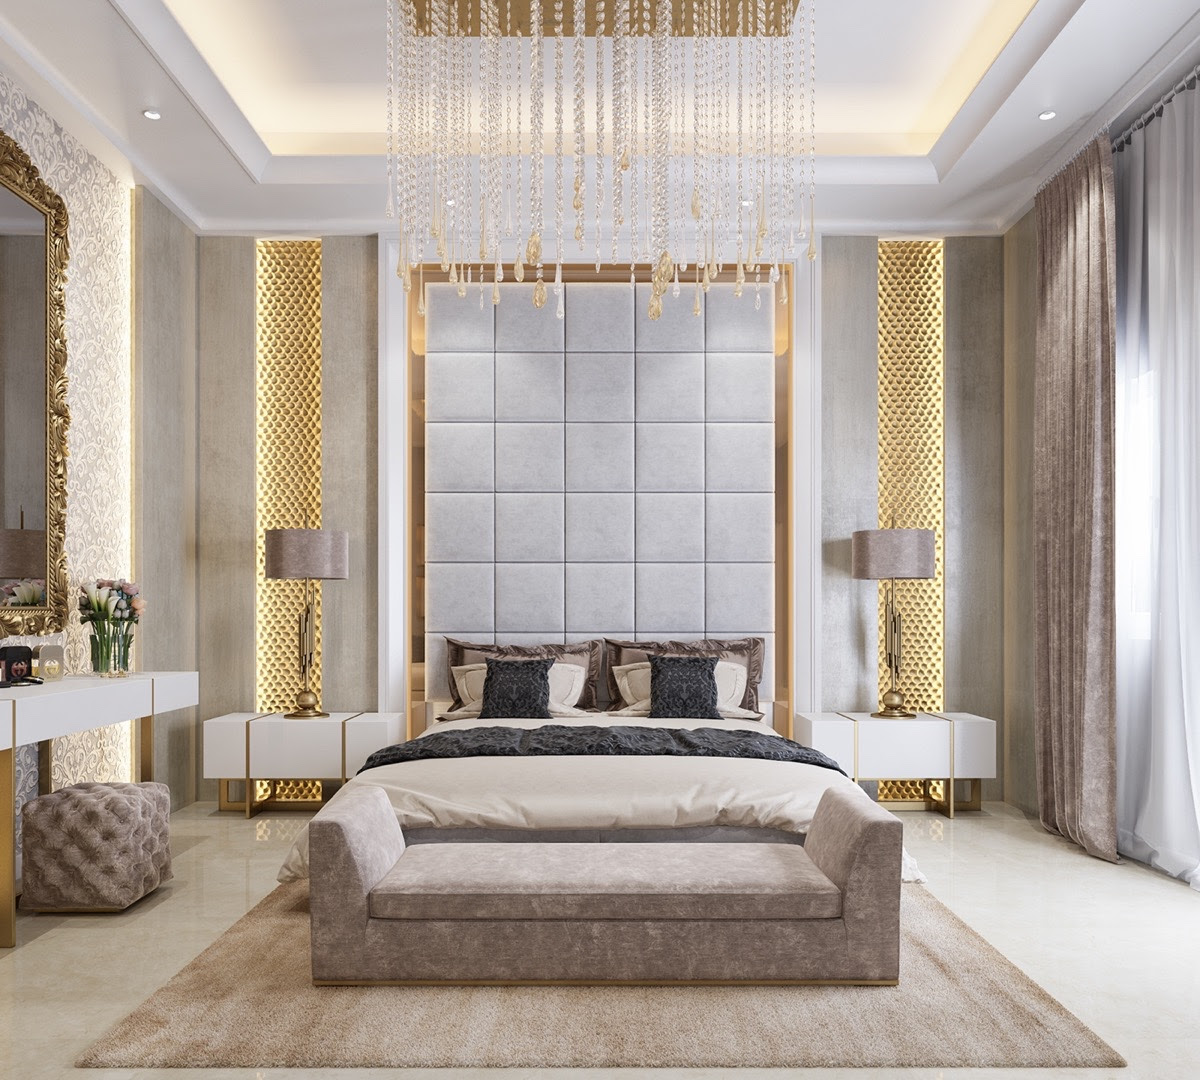 3 Kind Of Elegant Bedroom Design Ideas Includes a ...